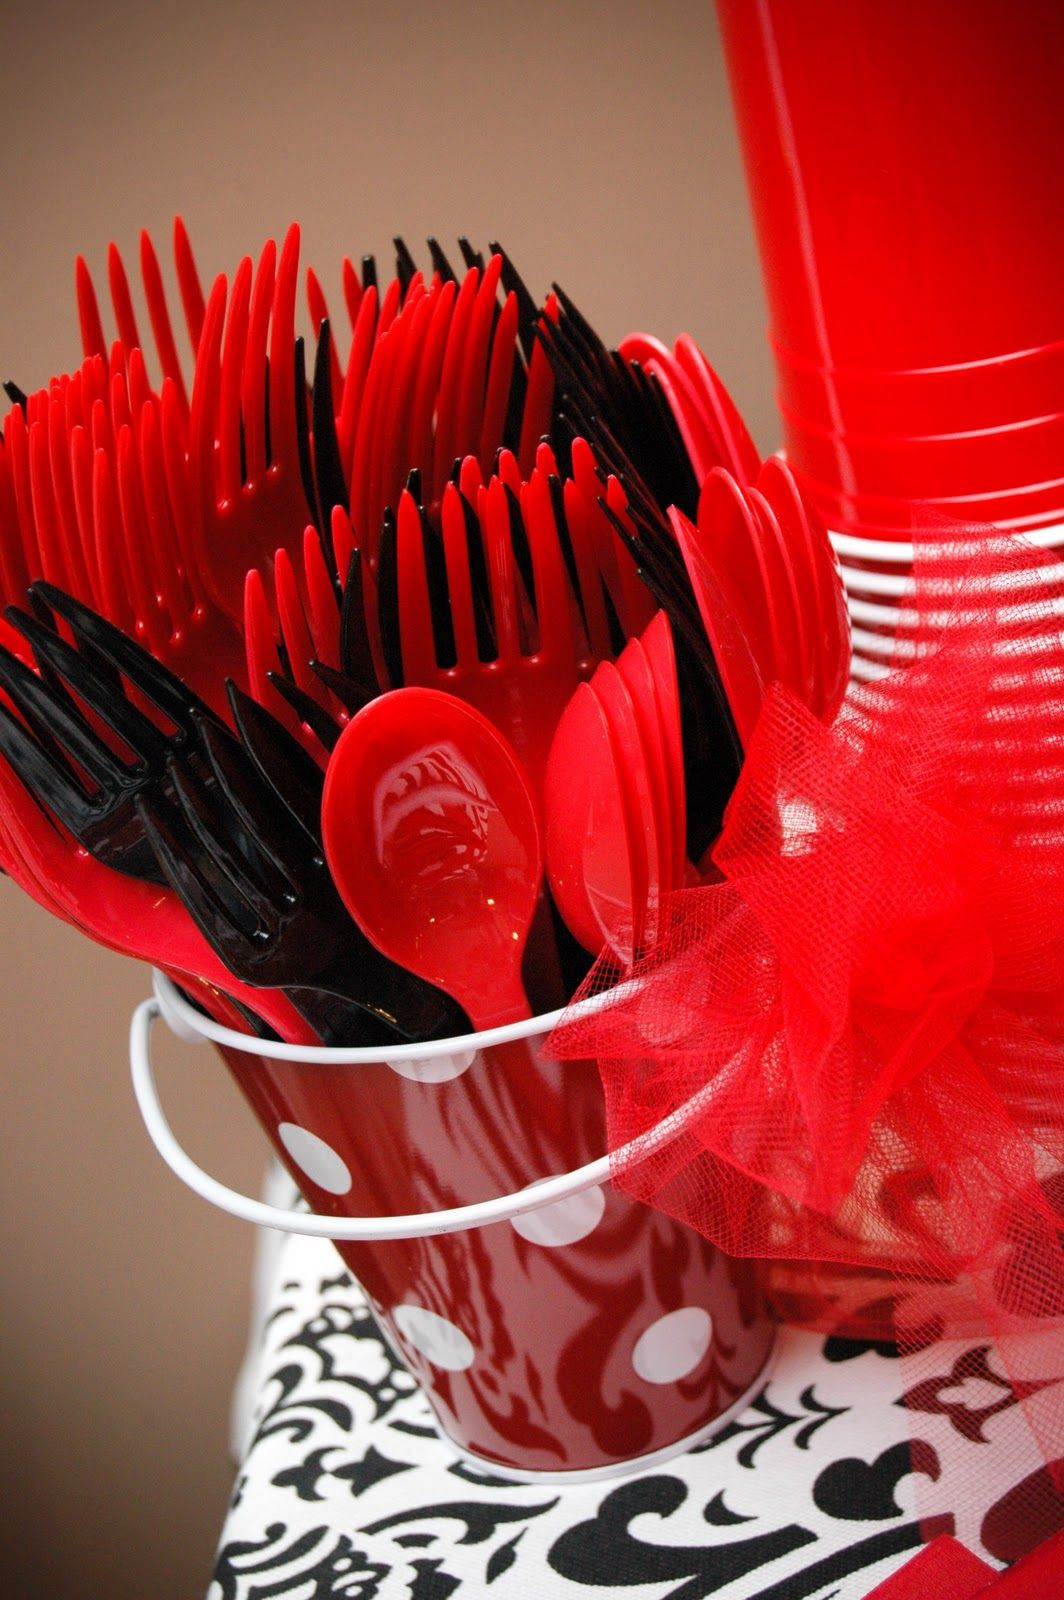 red and black plastic ware...for a party